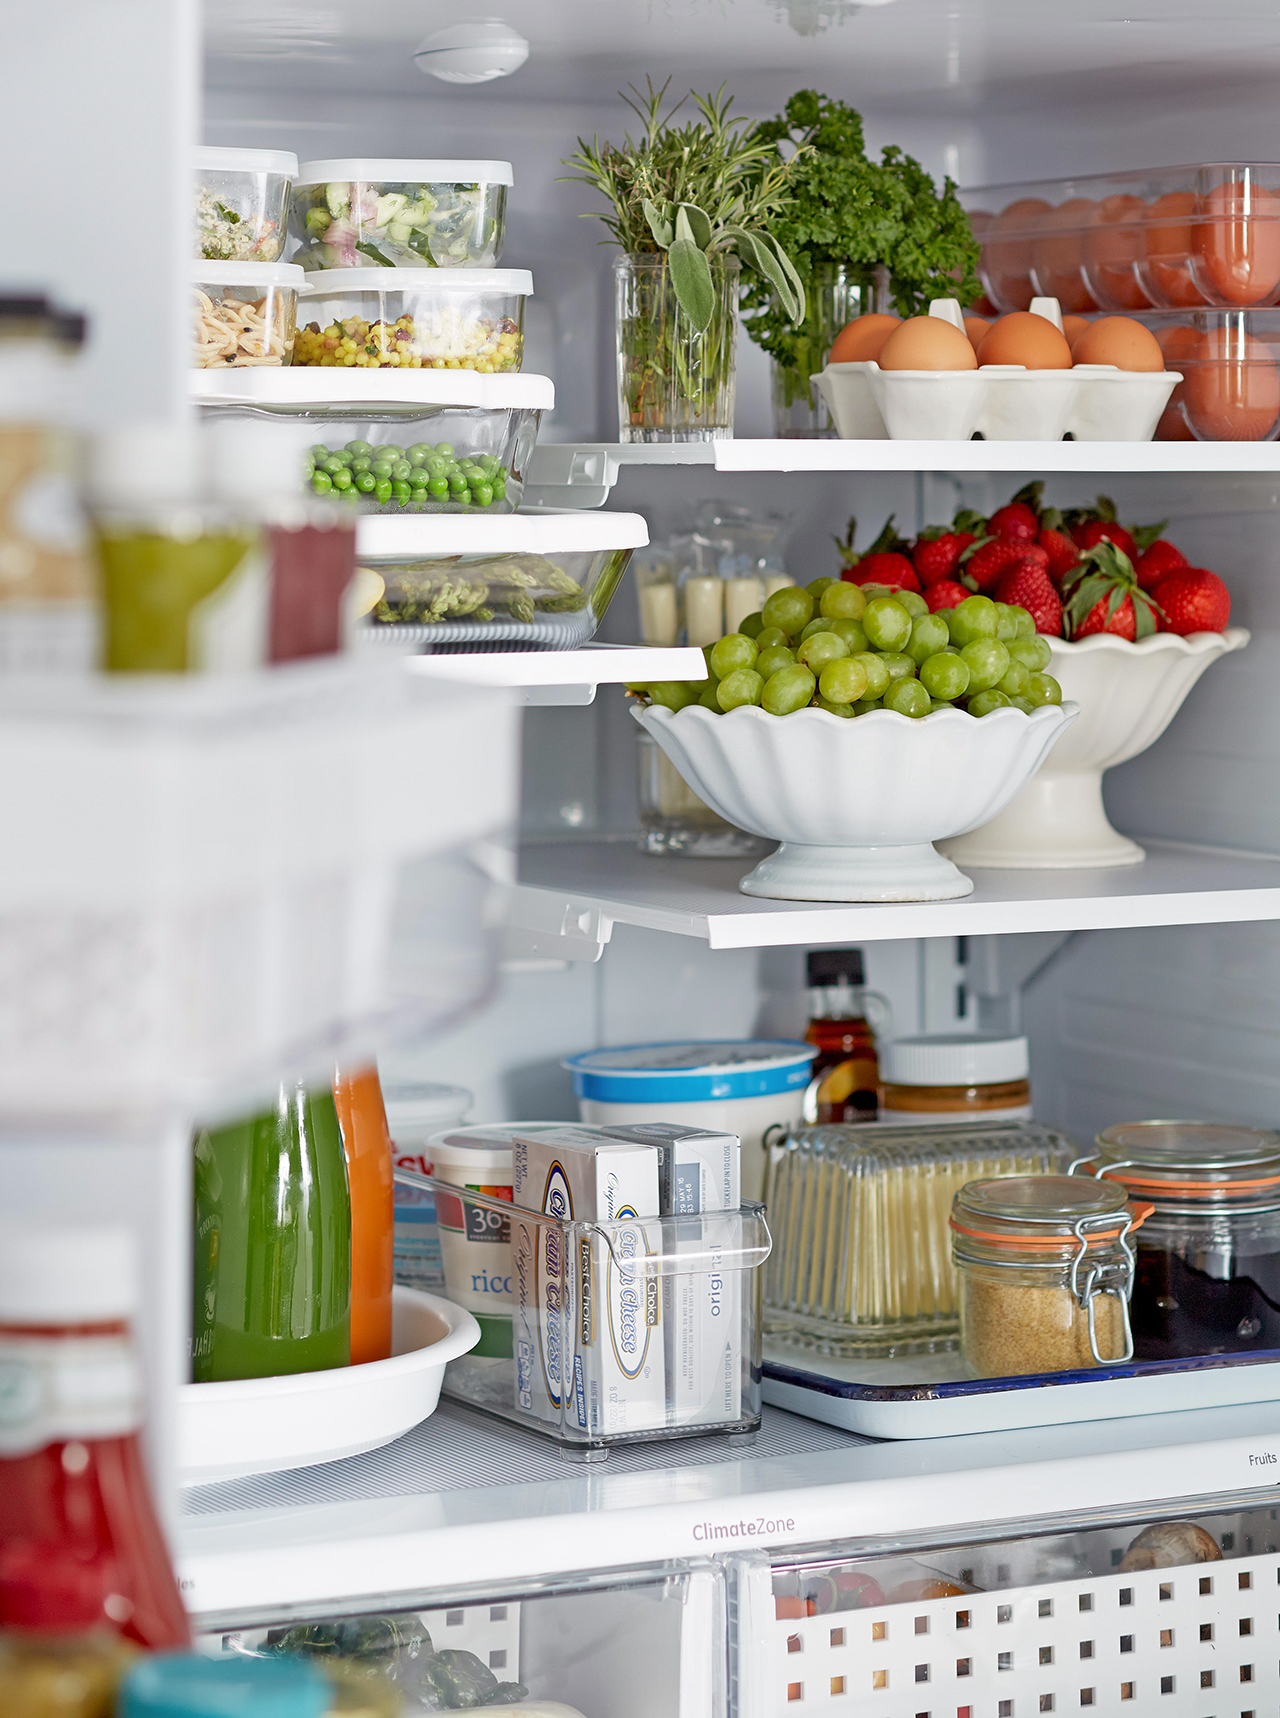 inside fridge view food organization shelving